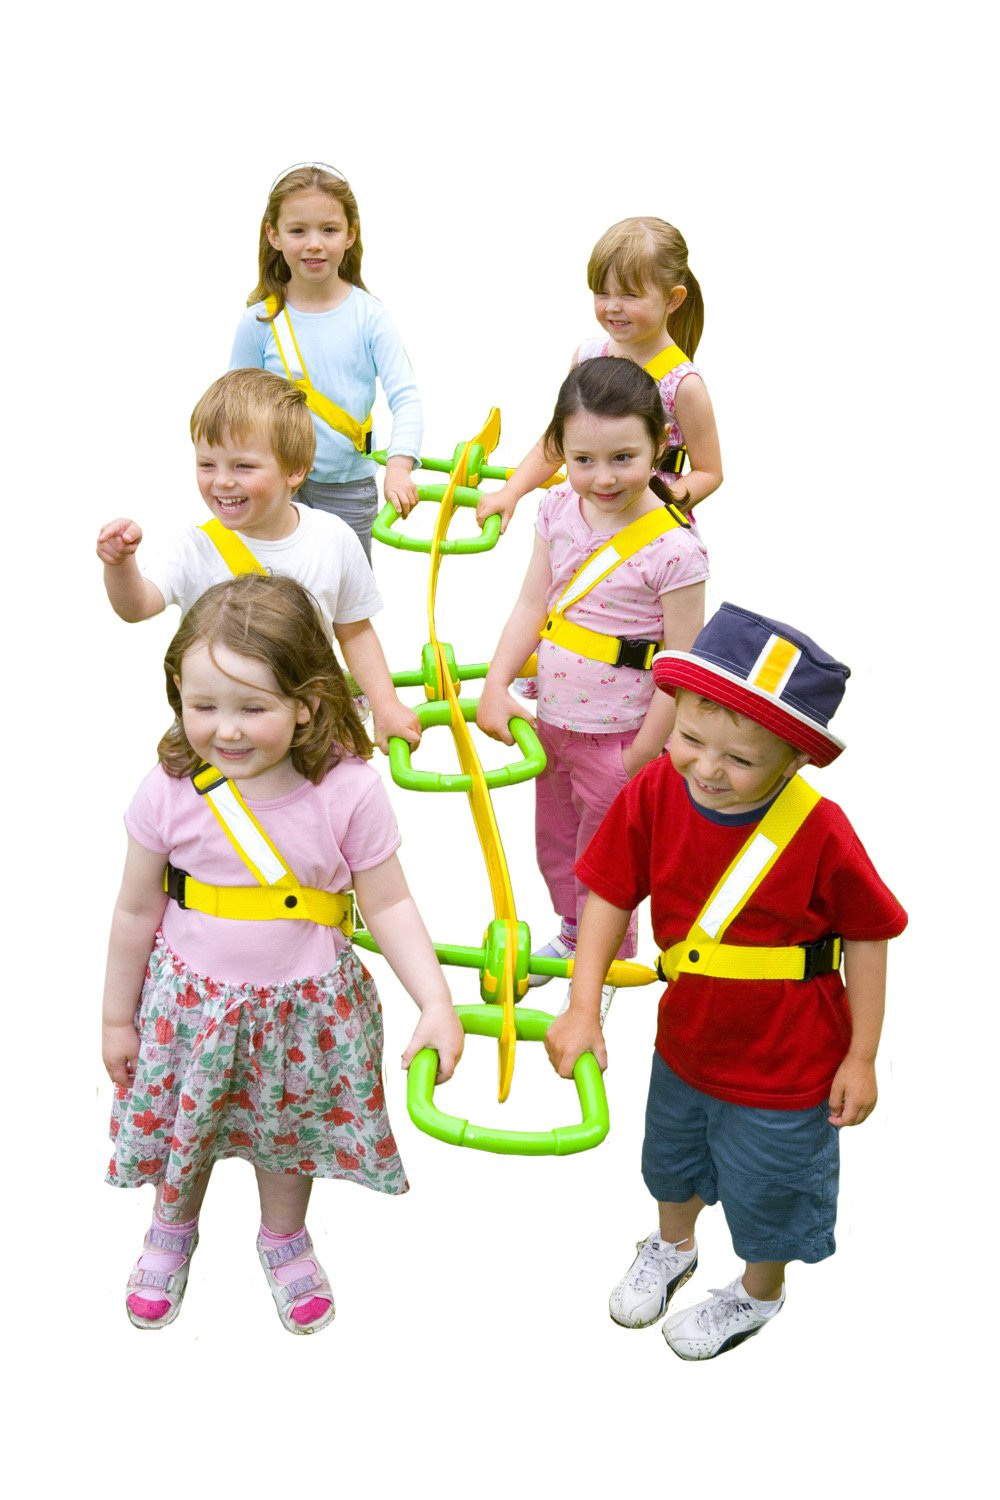 Walkodile Classic (6 Child), Childrens Walking Rope, Toddler Reins, Pre-School Safety Harness. Includes Free Learning Games for Walks Guide